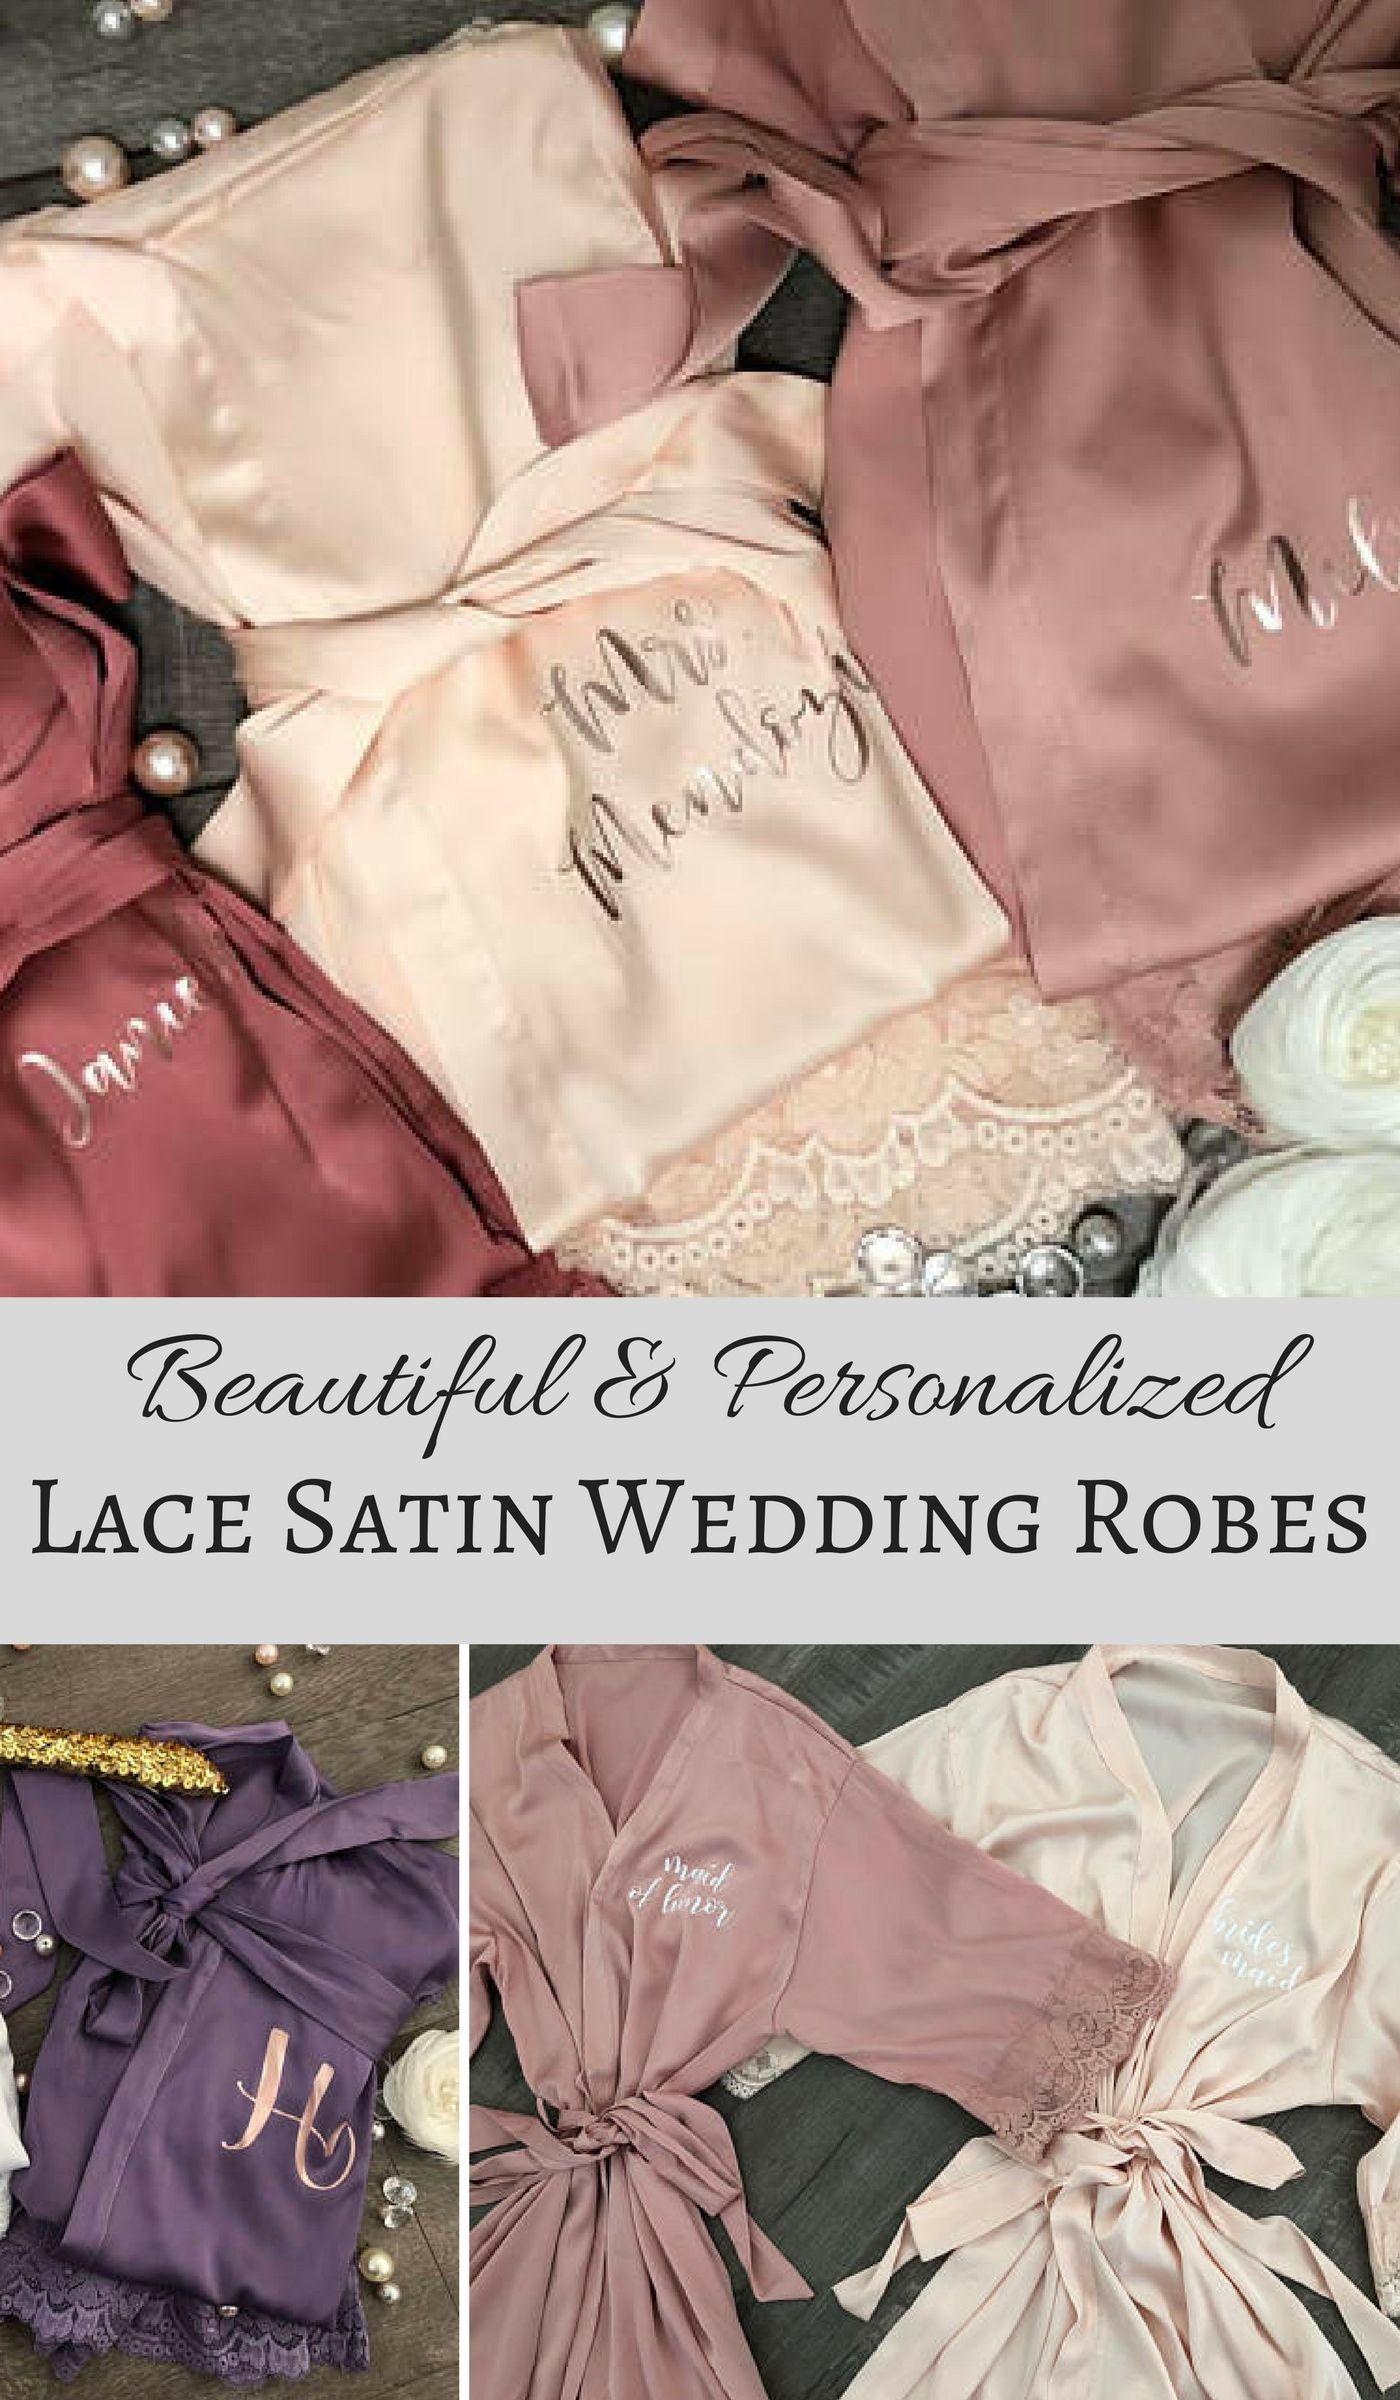 81d398a2a0ca Bridesmaid robes Set of 1,2,3,4,5,6,7,8,9,10,11,12,13,14 Bridesmaid  Gifts-Custom Wedding Robes-Gift for Bride-Satin Lace Robes-Bridal Robe  #affiliate ...